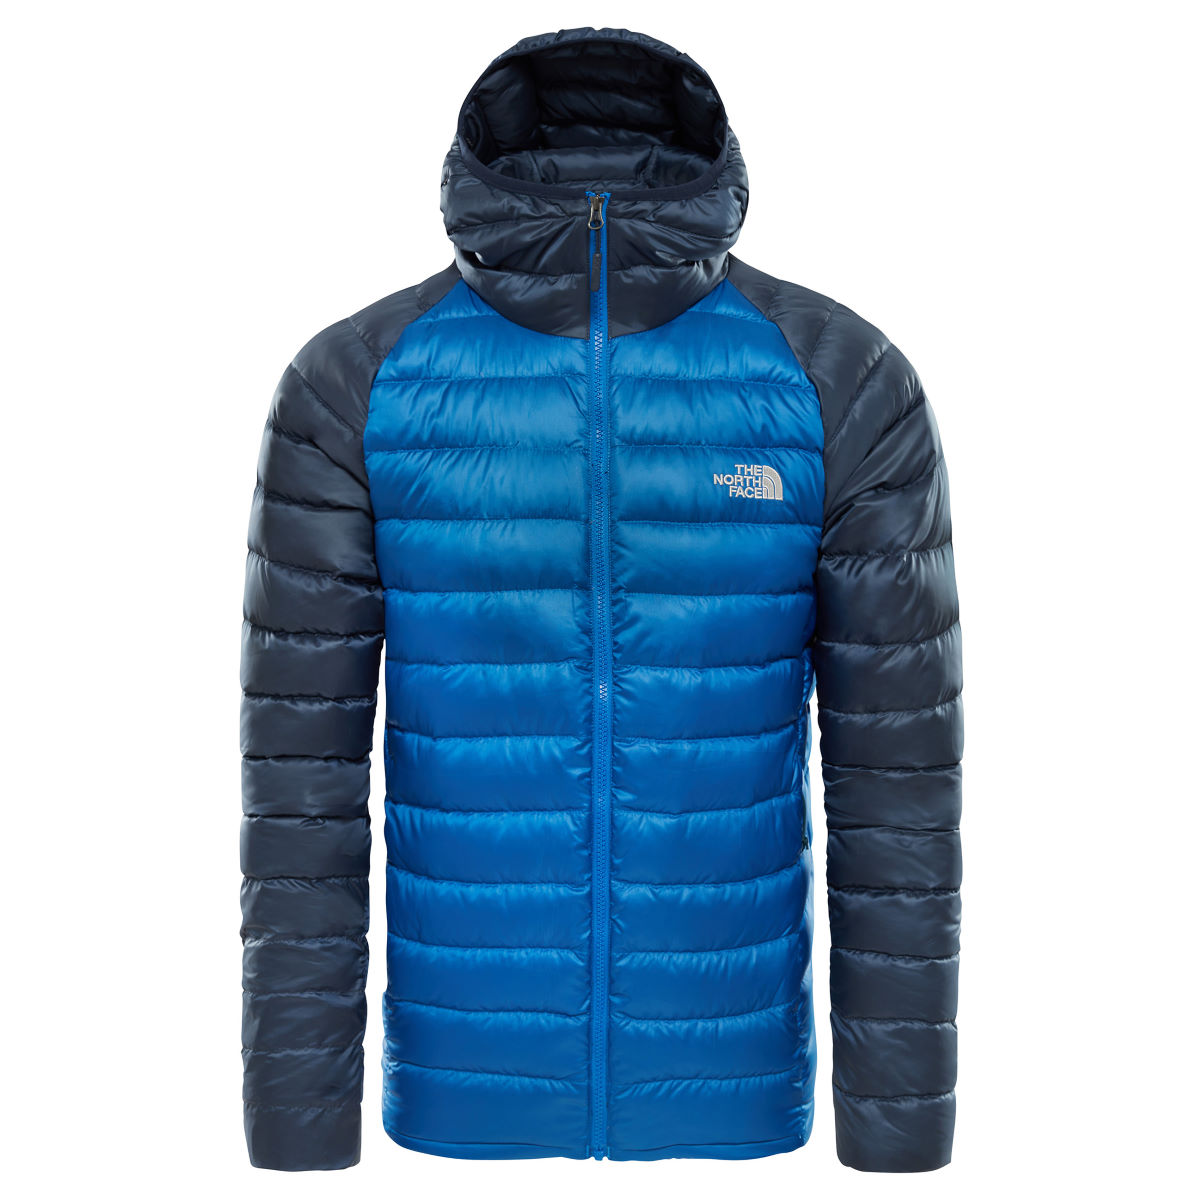 The North Face The North Face Trevail Hoodie   Jackets